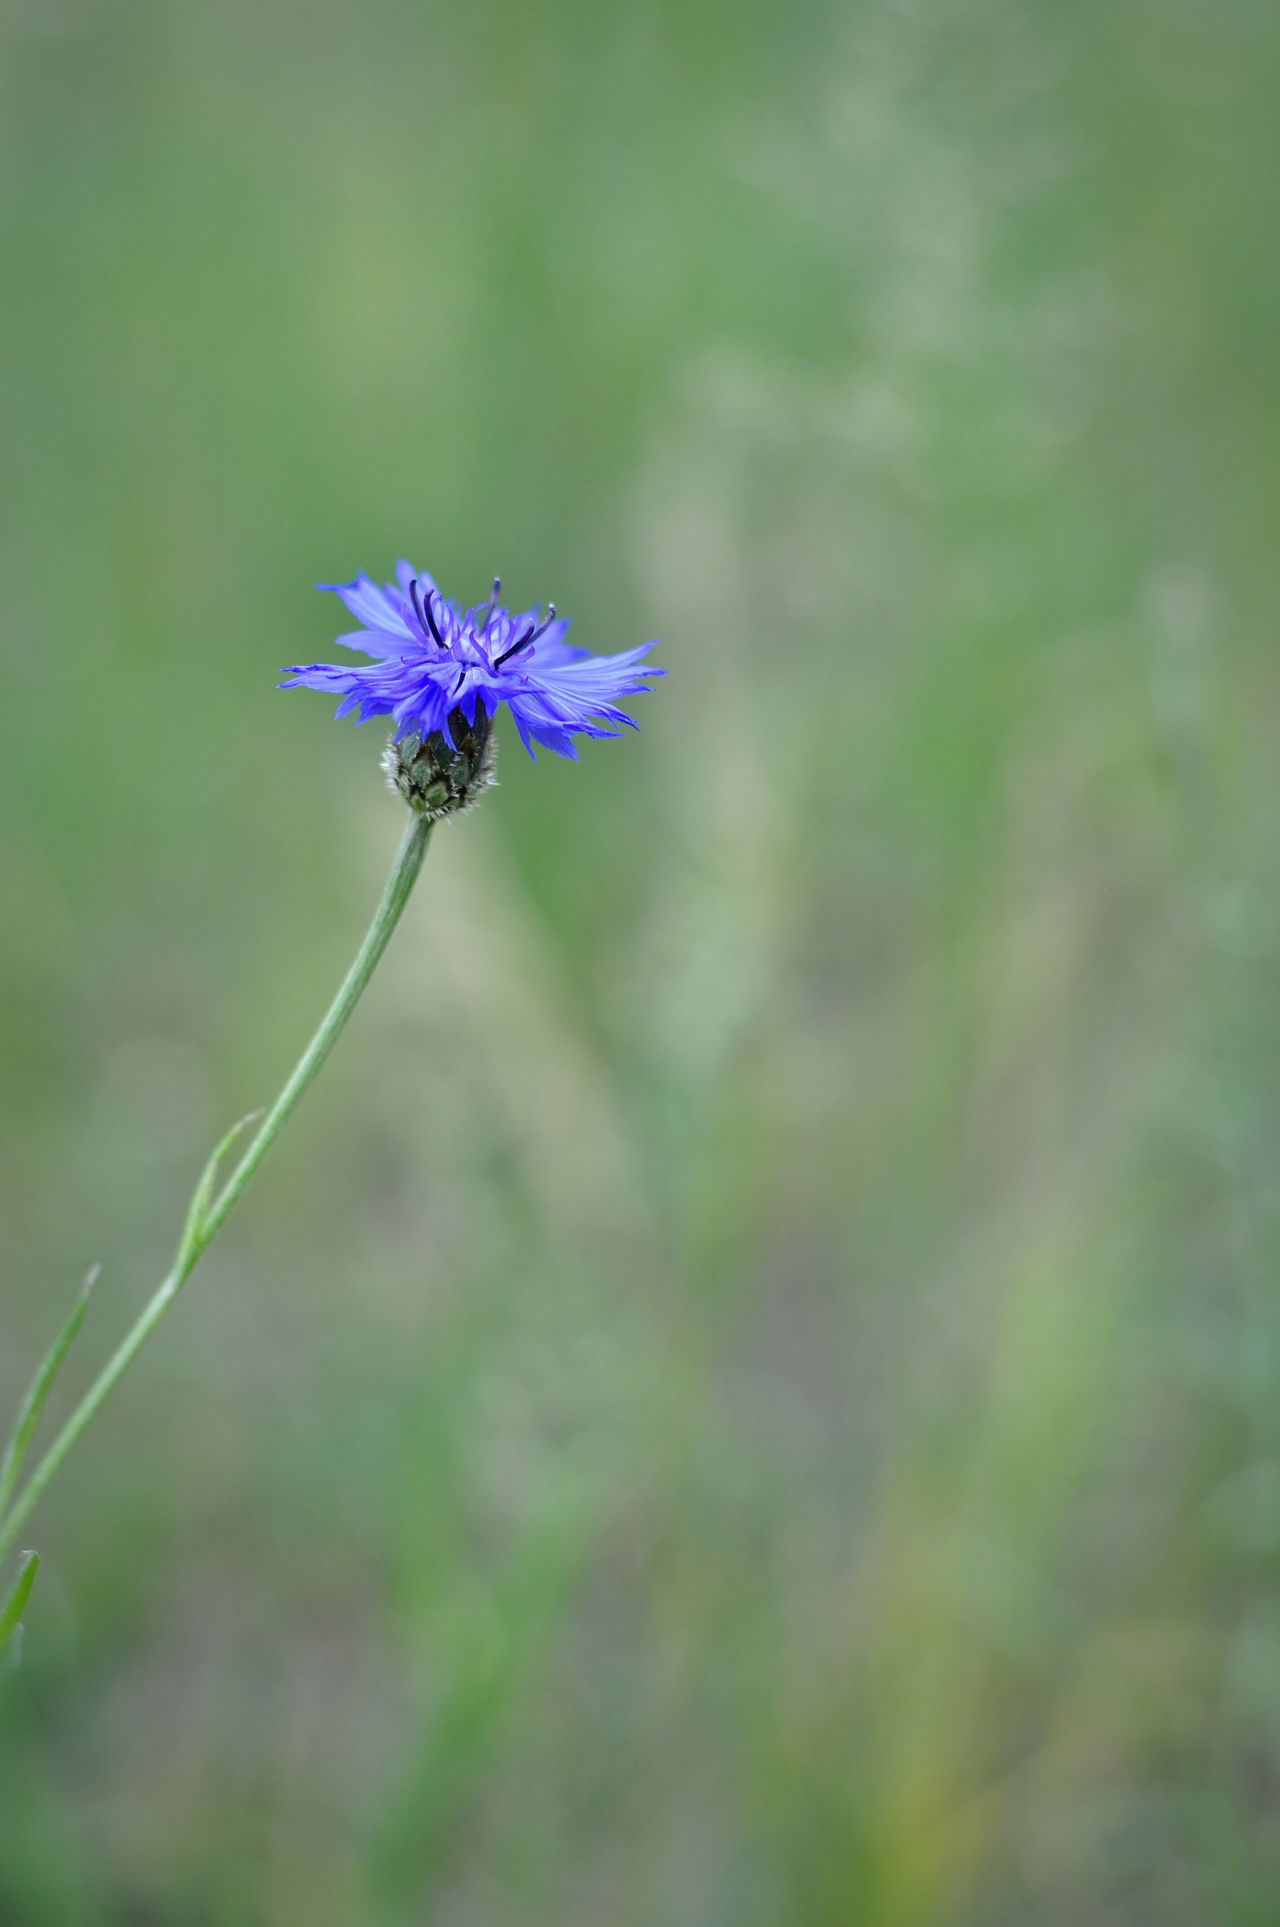 Blue Flowers Green Field Grass Naturelovers Nature Minimalism Natural Beauty Beauty In Nature Outdoors Nature_collection Nature Photography Flowers Flower Field Flowers Cornflower